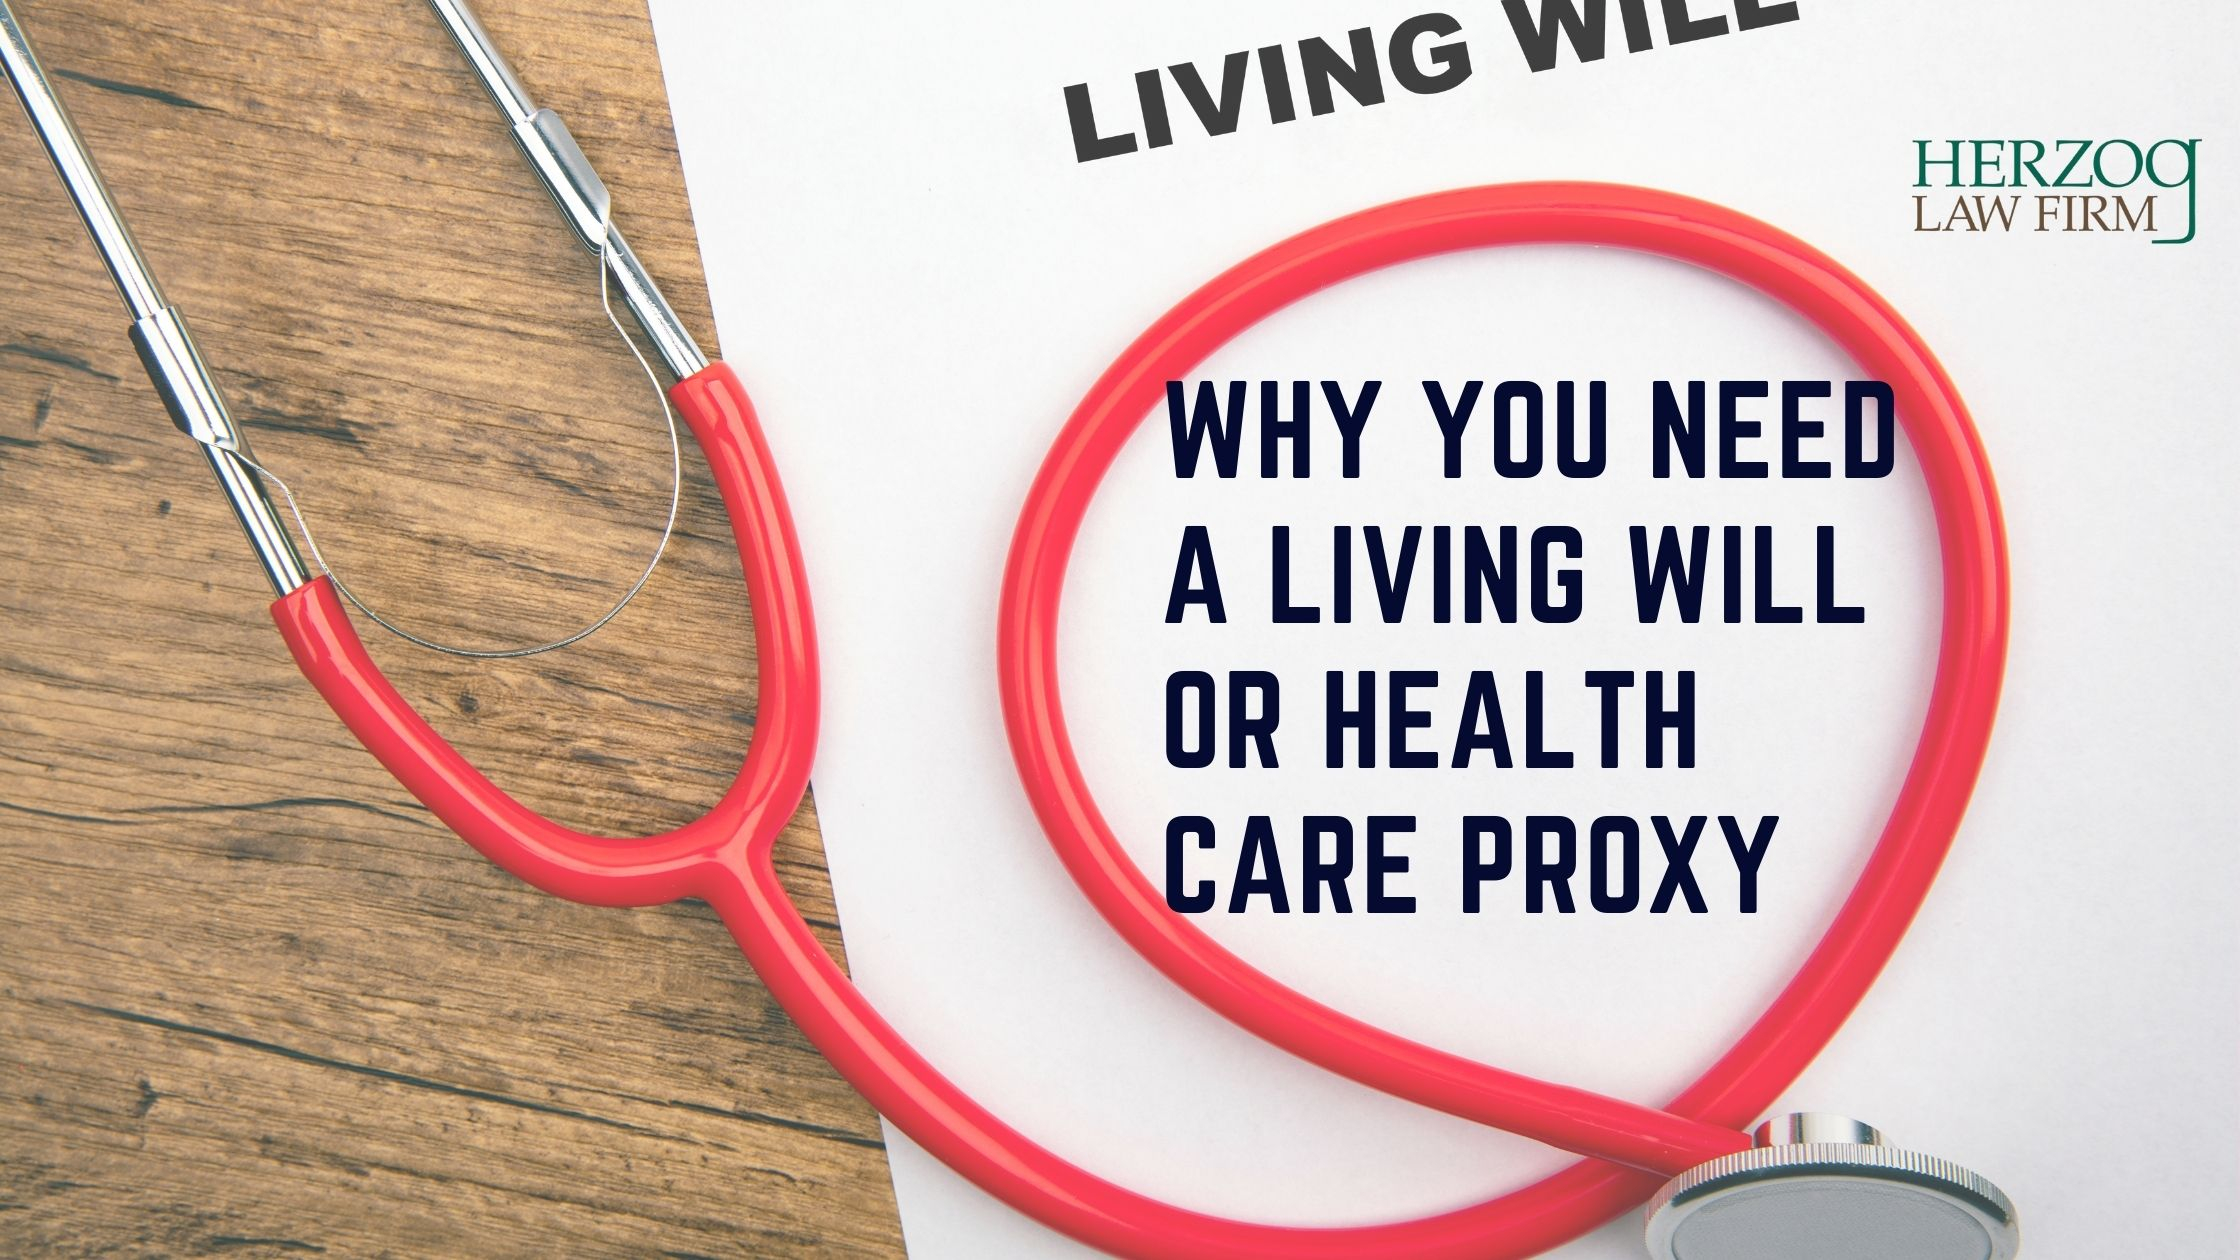 Why Have A Living Will Or Health Care Proxy Herzog Law Firm